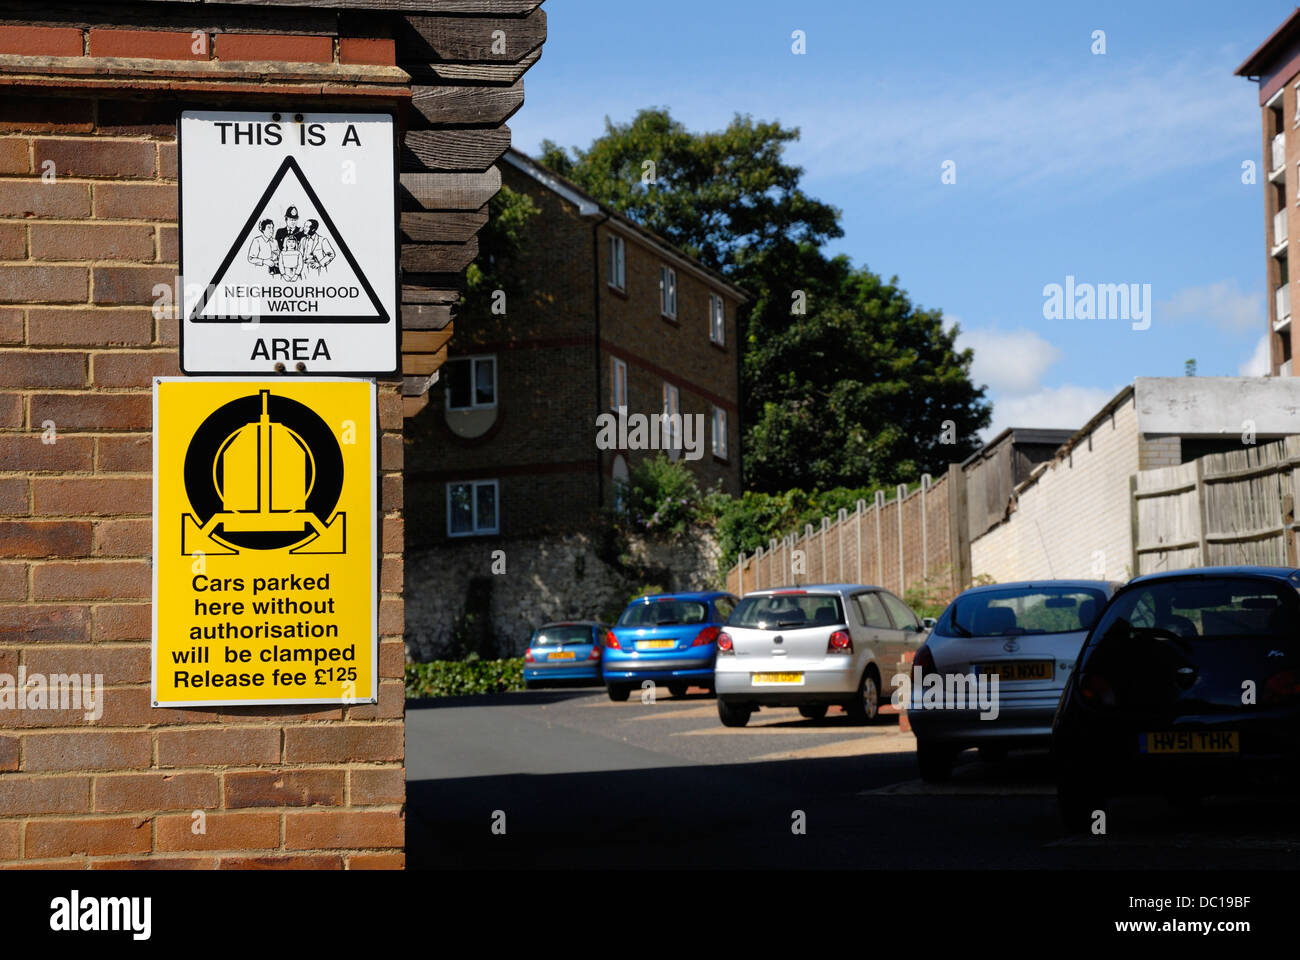 Maidstone, Kent, England, UK. Signs in residential area - Neibourhood Watch and wheel clamping - Stock Image